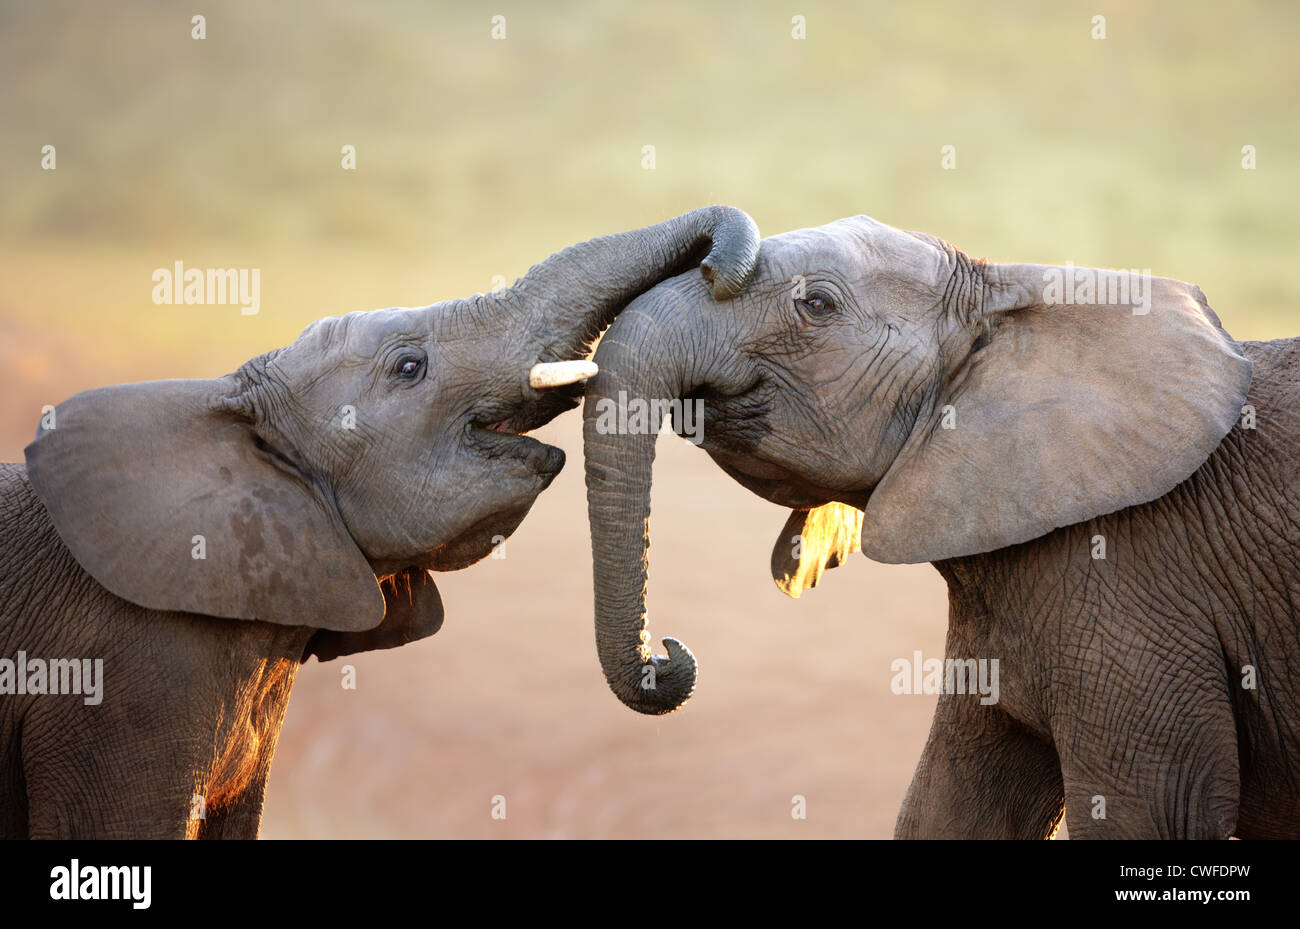 Elephants touching each other gently (greeting) - Addo Elephant National Park - South Africa - Stock Image